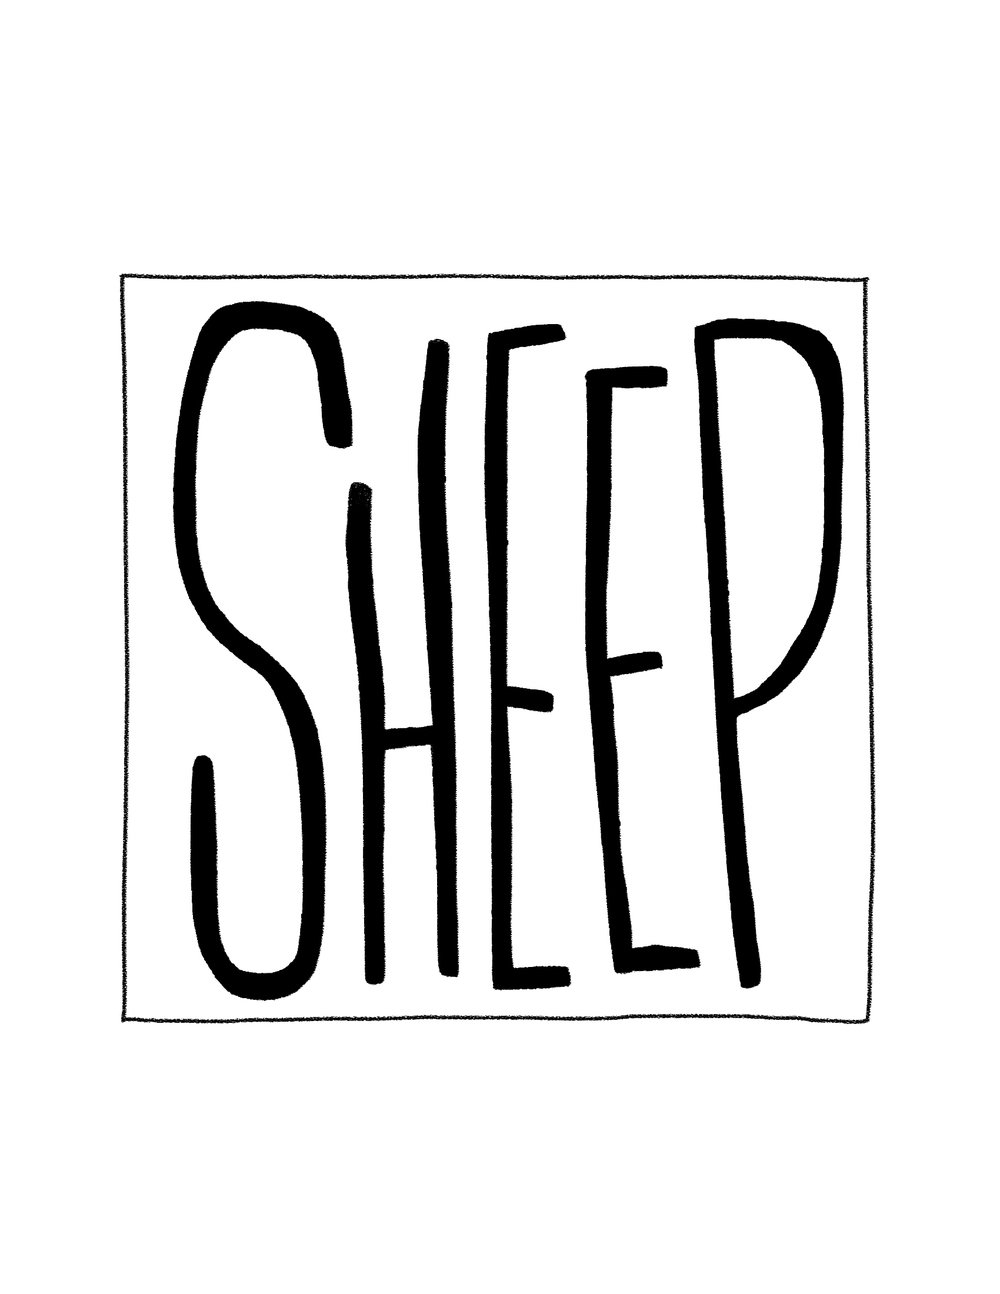 zodiac_0016_sheep.jpg